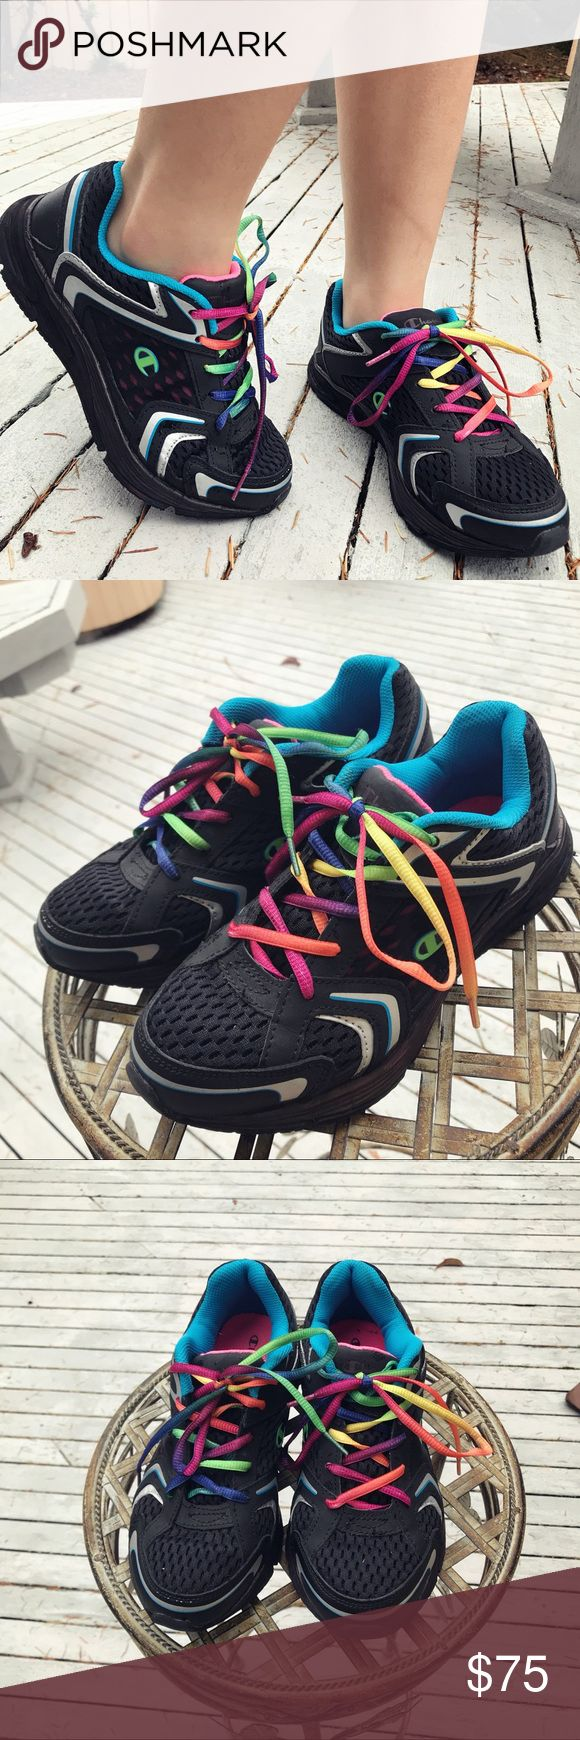 Champion multi-colored sneakers Insane vintage multicolored Champion shoes. These are so beautiful and would be perfect for Champion collectors.  Size 7.5 in women's . In perfect condition because i only worn once, Super rare! Champion Shoes Sneakers